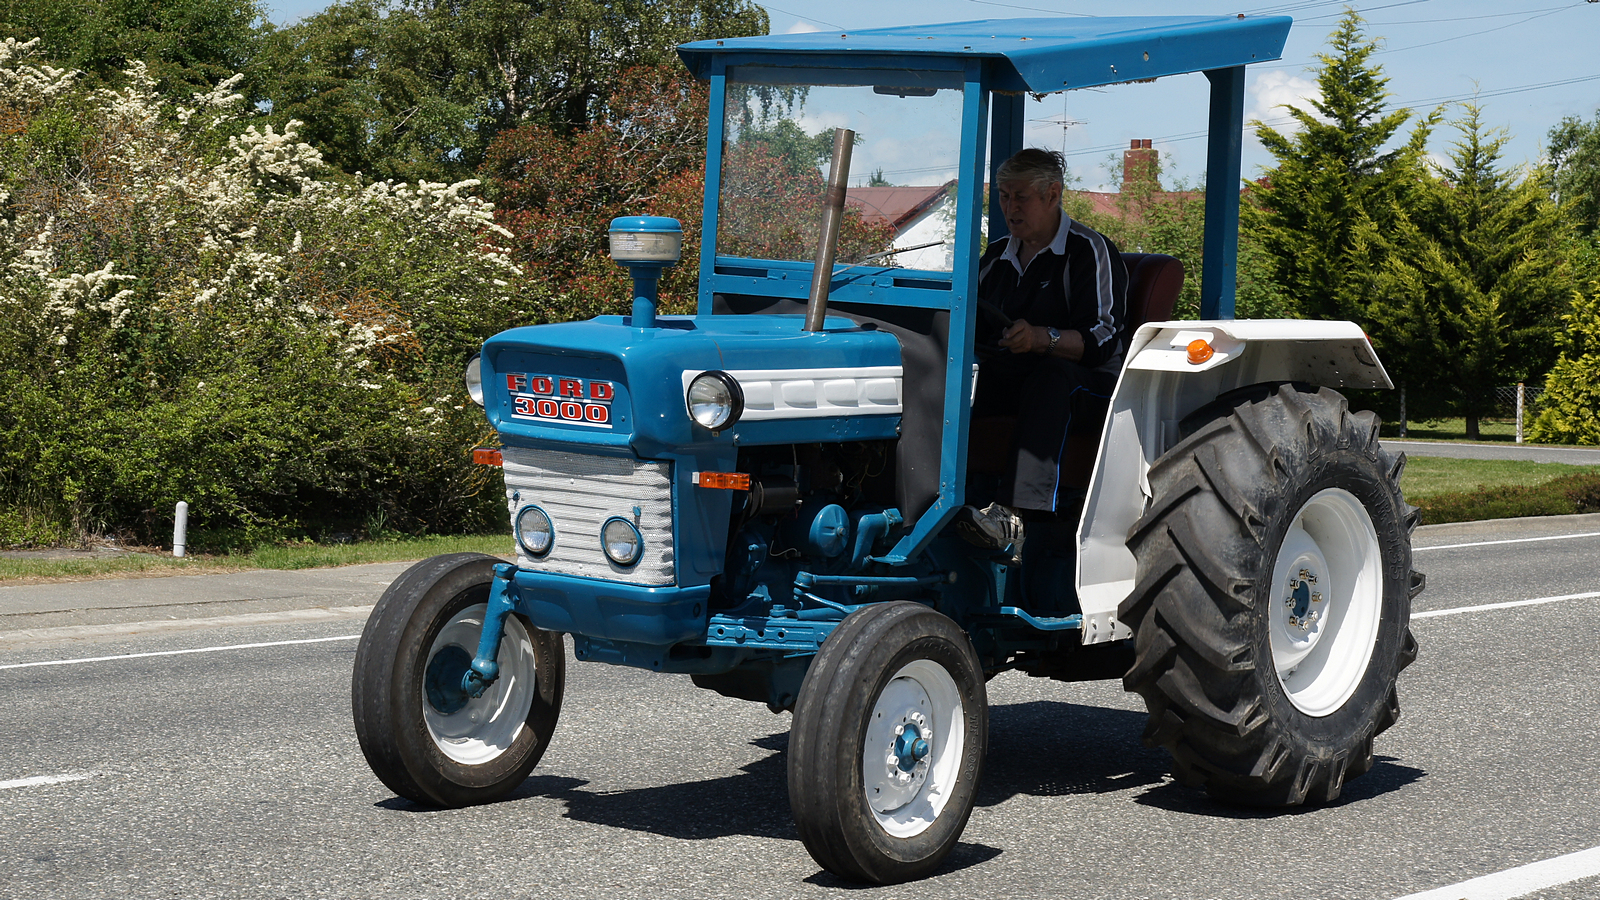 Ford Tractor Turf Tires : Ford tractor tires